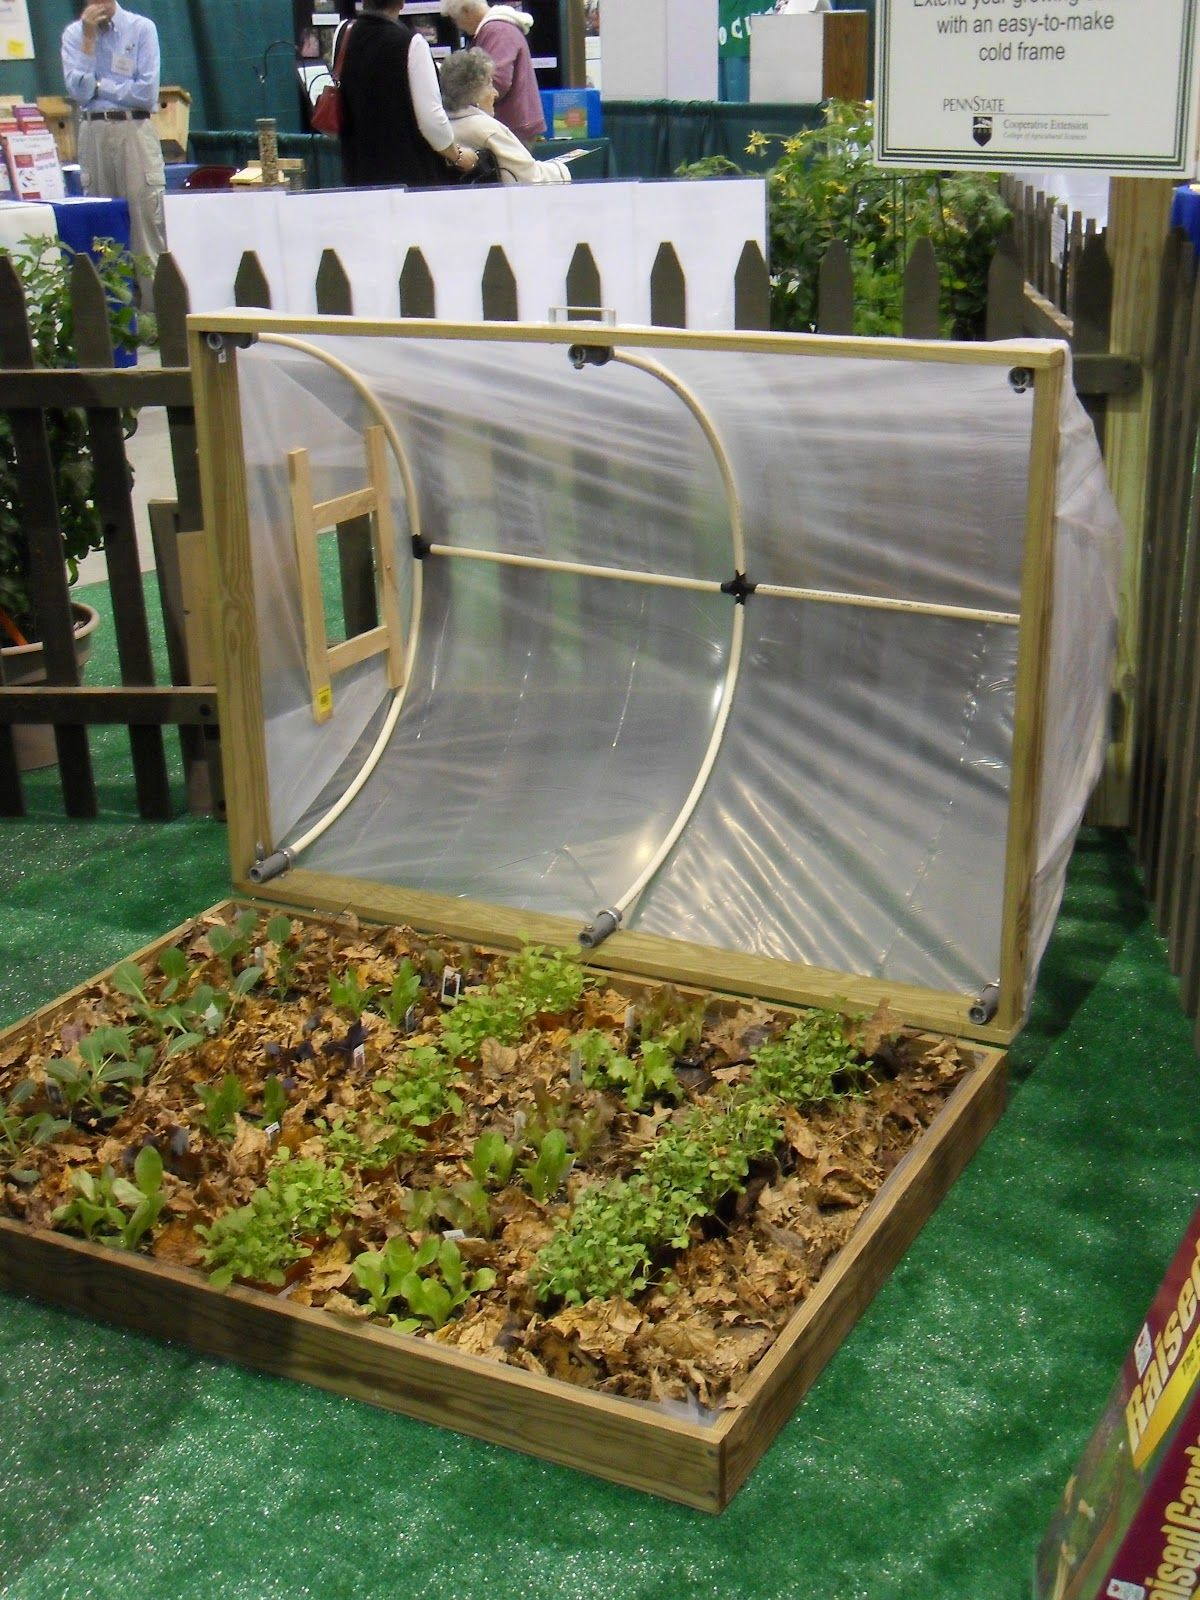 Diy Garden Window Plans Pallet 43greenhouse Mini Greenhouse With Easy Open Roof